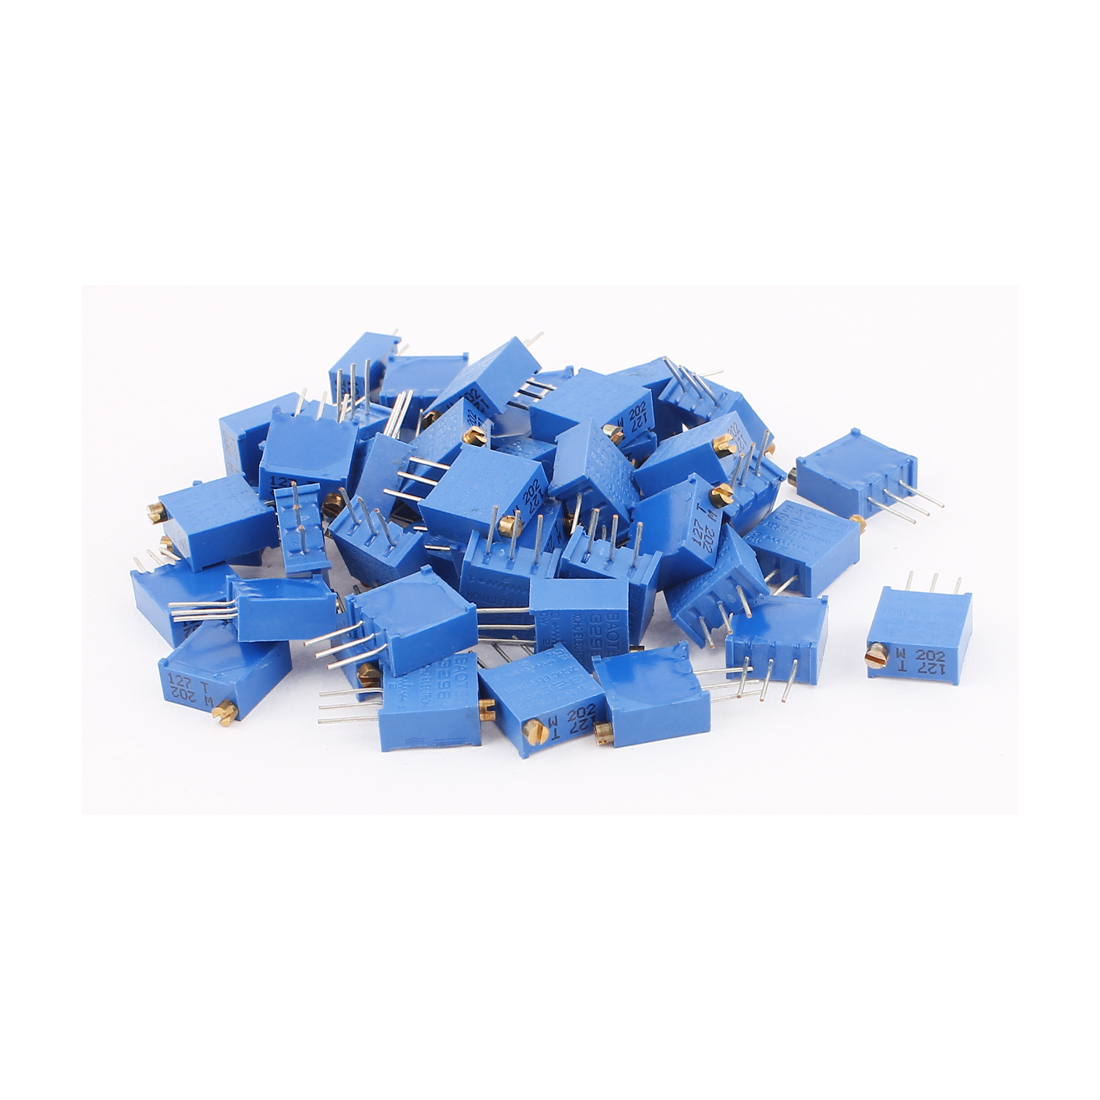 50Pcs 3296W-202 2K Ohm Resistor Trim Pot Potentiometer Trimmer Blue